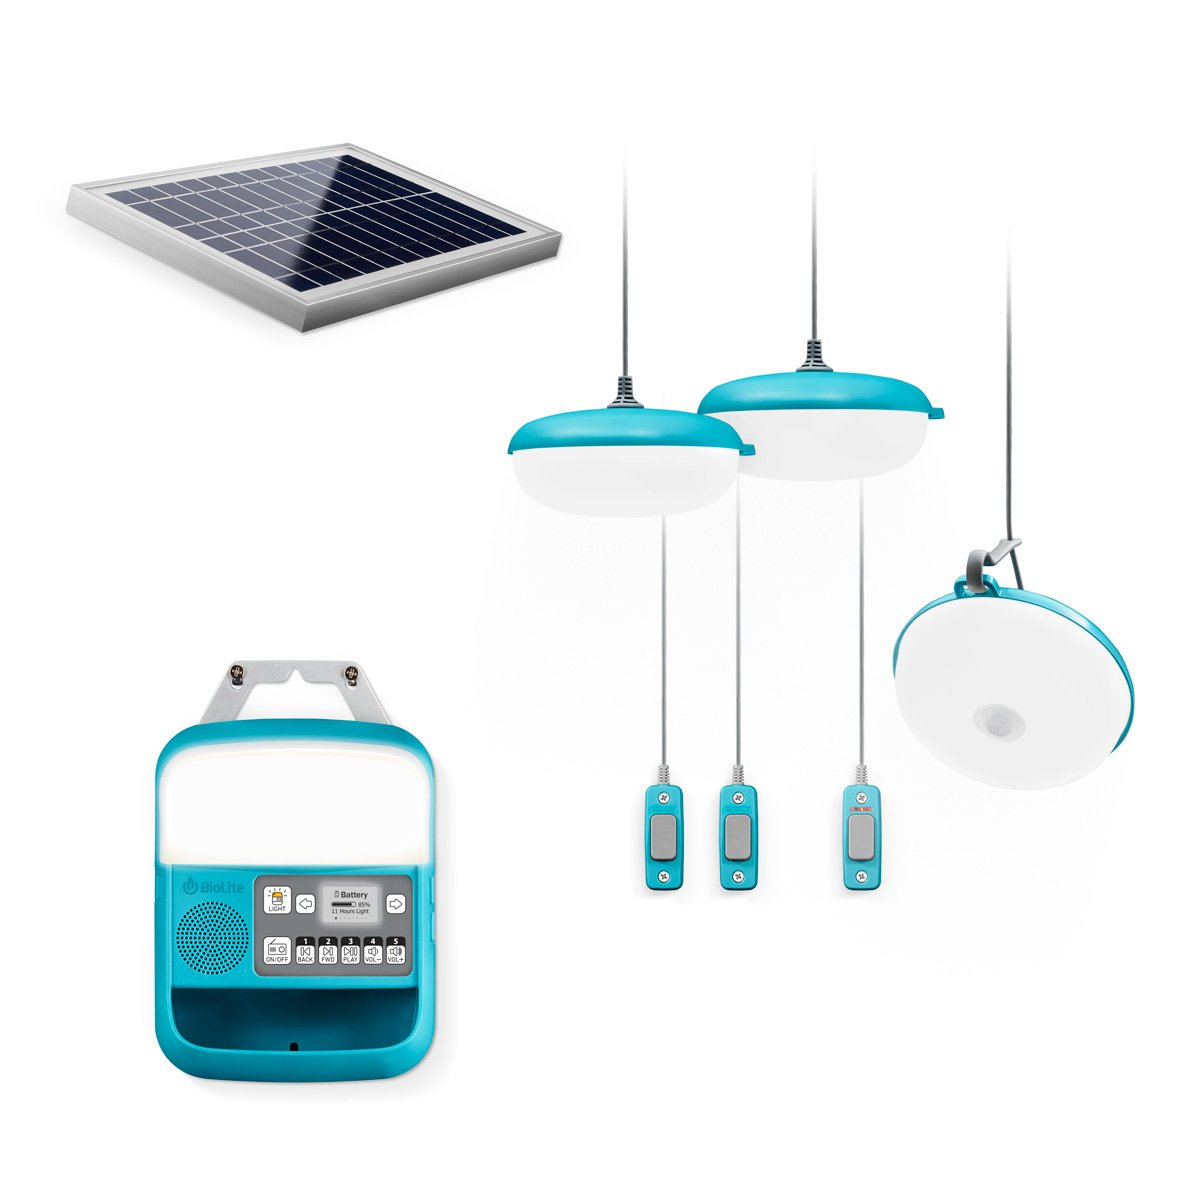 BioLite SolarHome 620 Portable Off-Grid Solar Lighting System